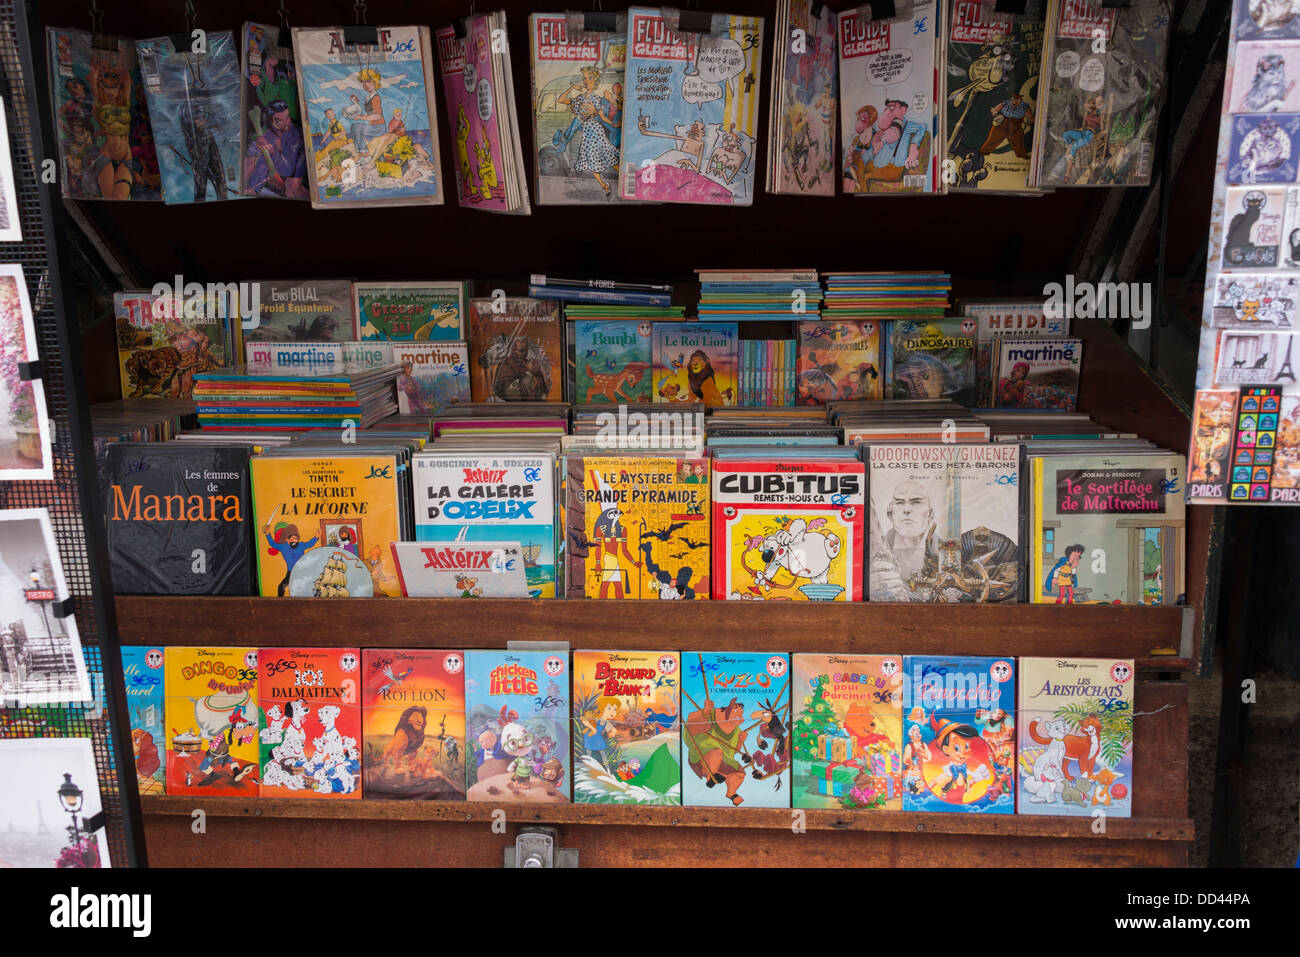 Traditional pavement stall on the Rive Gauche of Paris selling books and posters - Stock Image